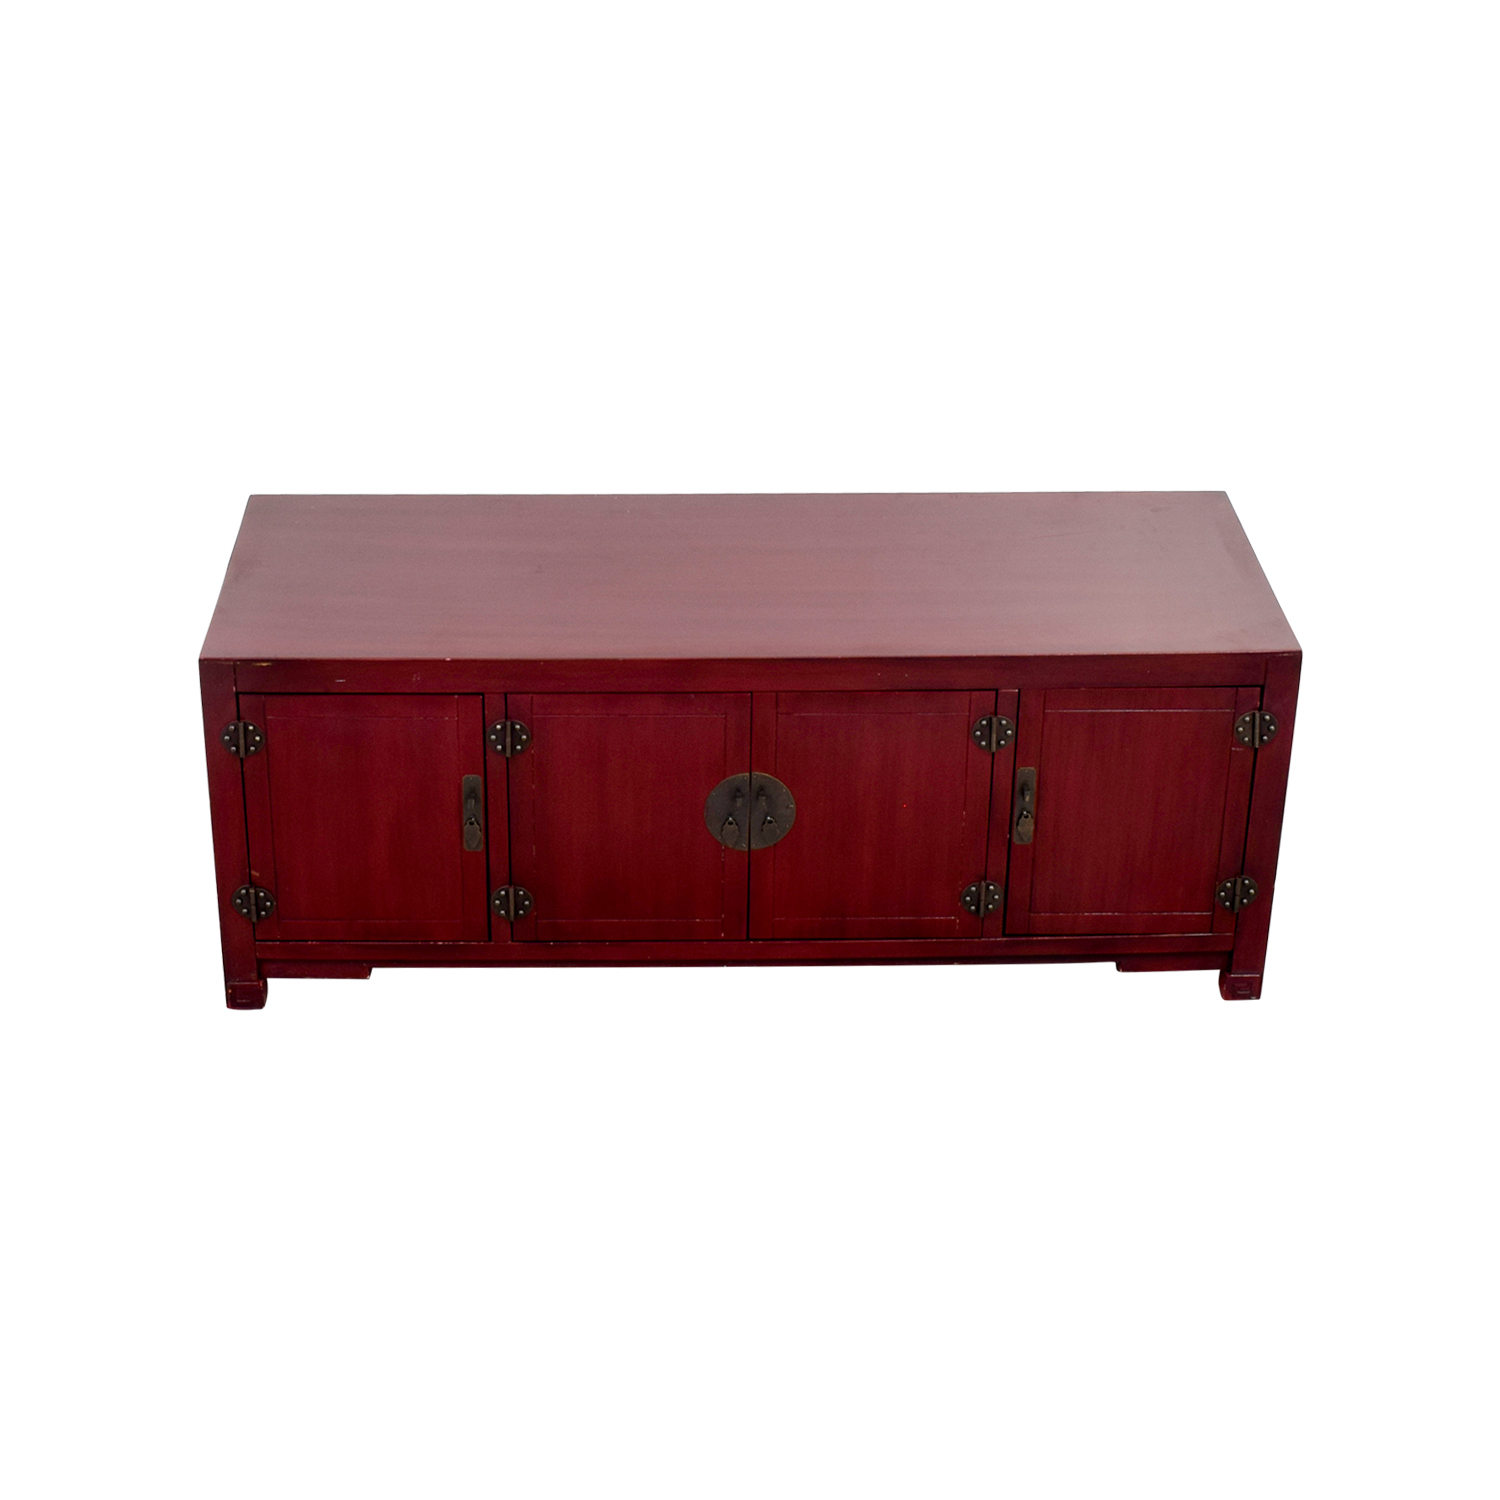 Pier 1 Mei Antique Red Tv Stand Dimensions